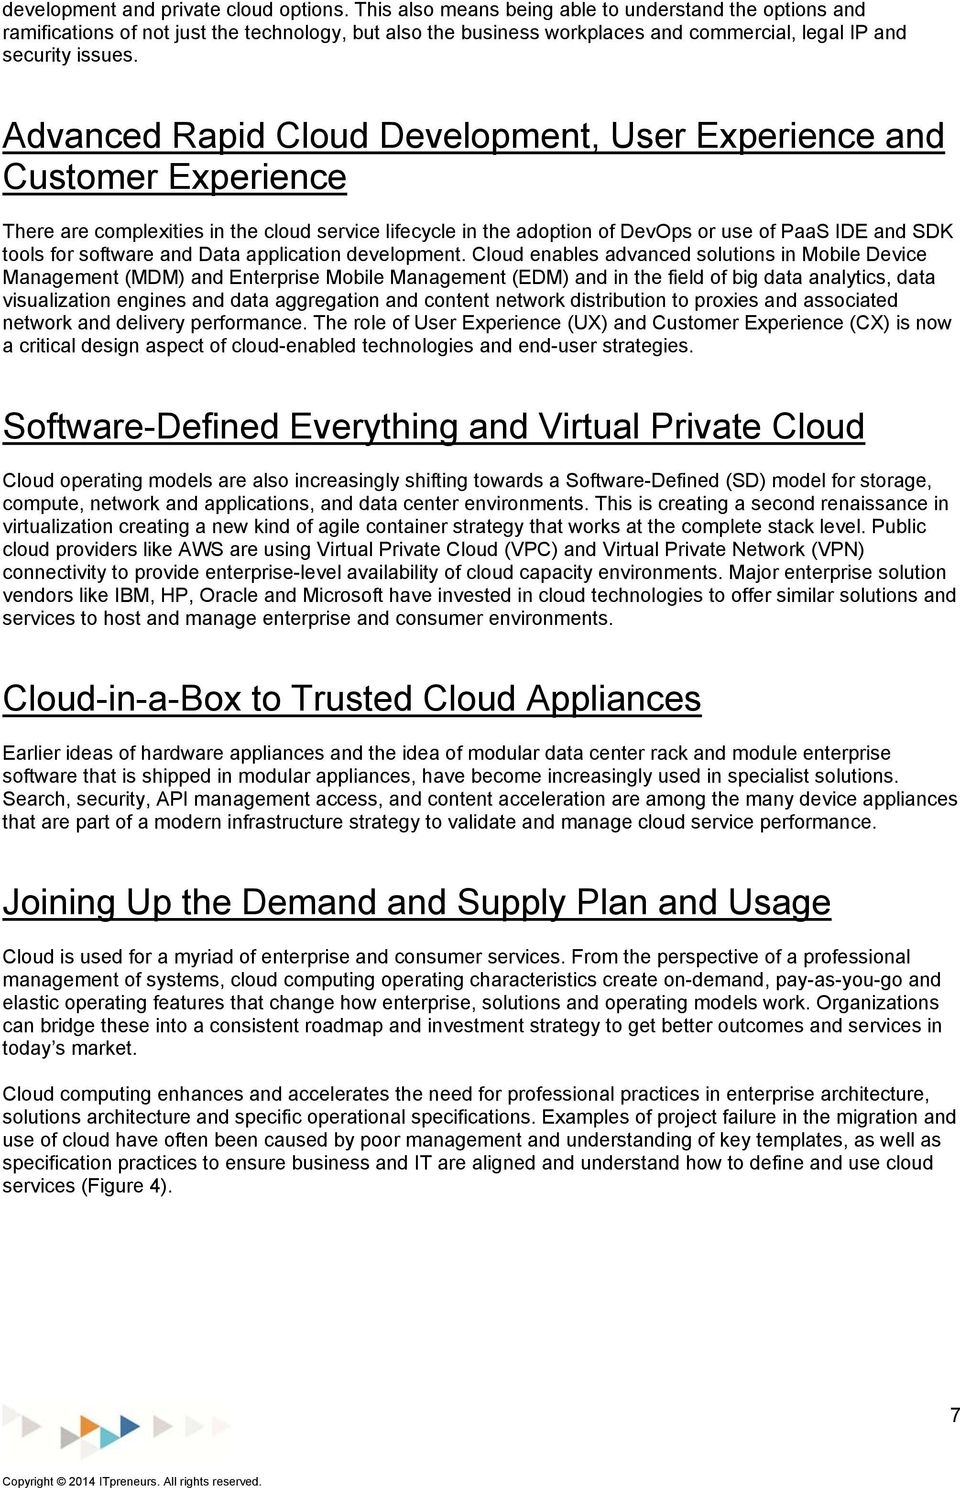 Advanced Rapid Cloud Development, User Experience and Customer Experience There are complexities in the cloud service lifecycle in the adoption of DevOps or use of PaaS IDE and SDK tools for software